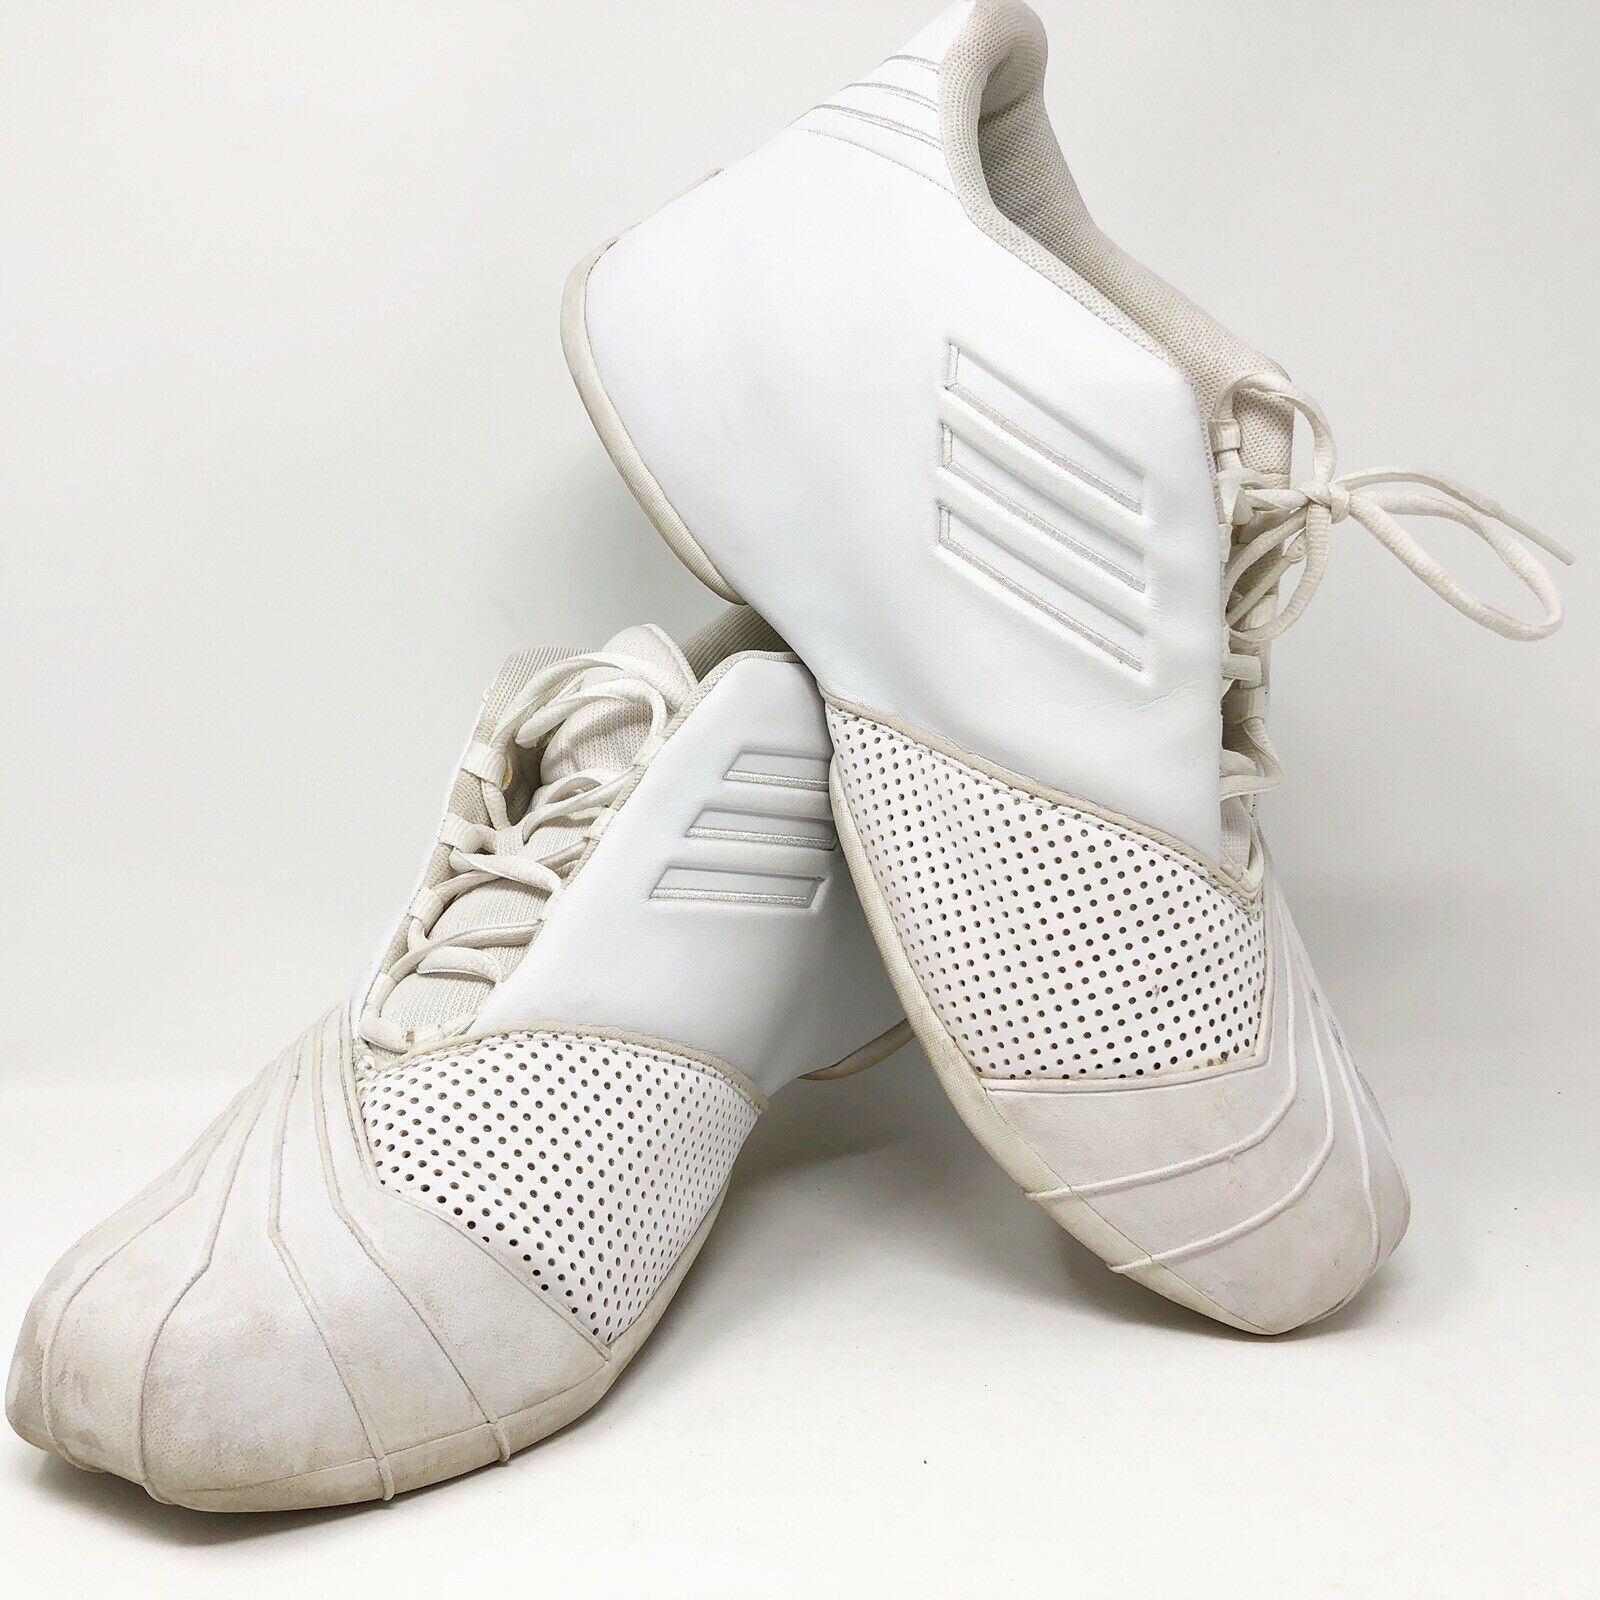 Adidas Adiprene Torsion Athletic shoes Mens size 12 White Basketball Sneakers